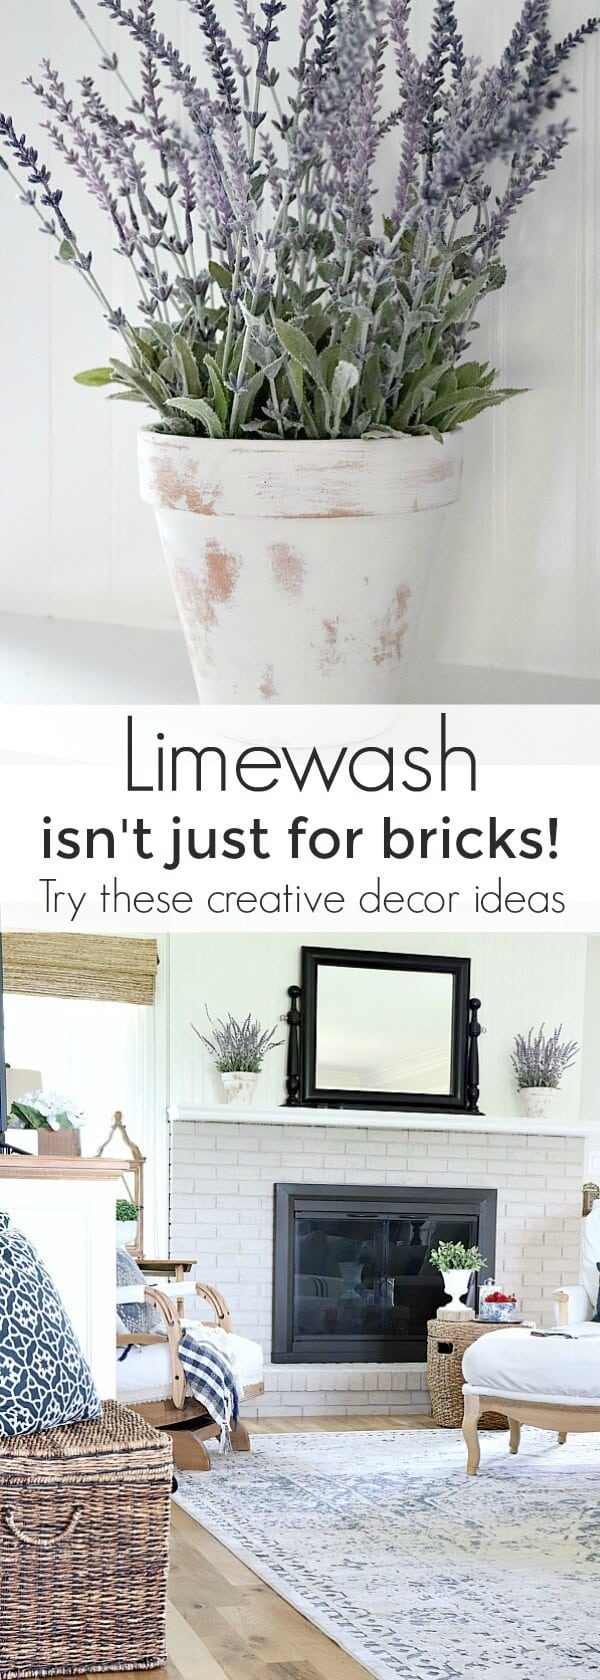 Limewash isn't just for bricks! Try these creative decor ideas!